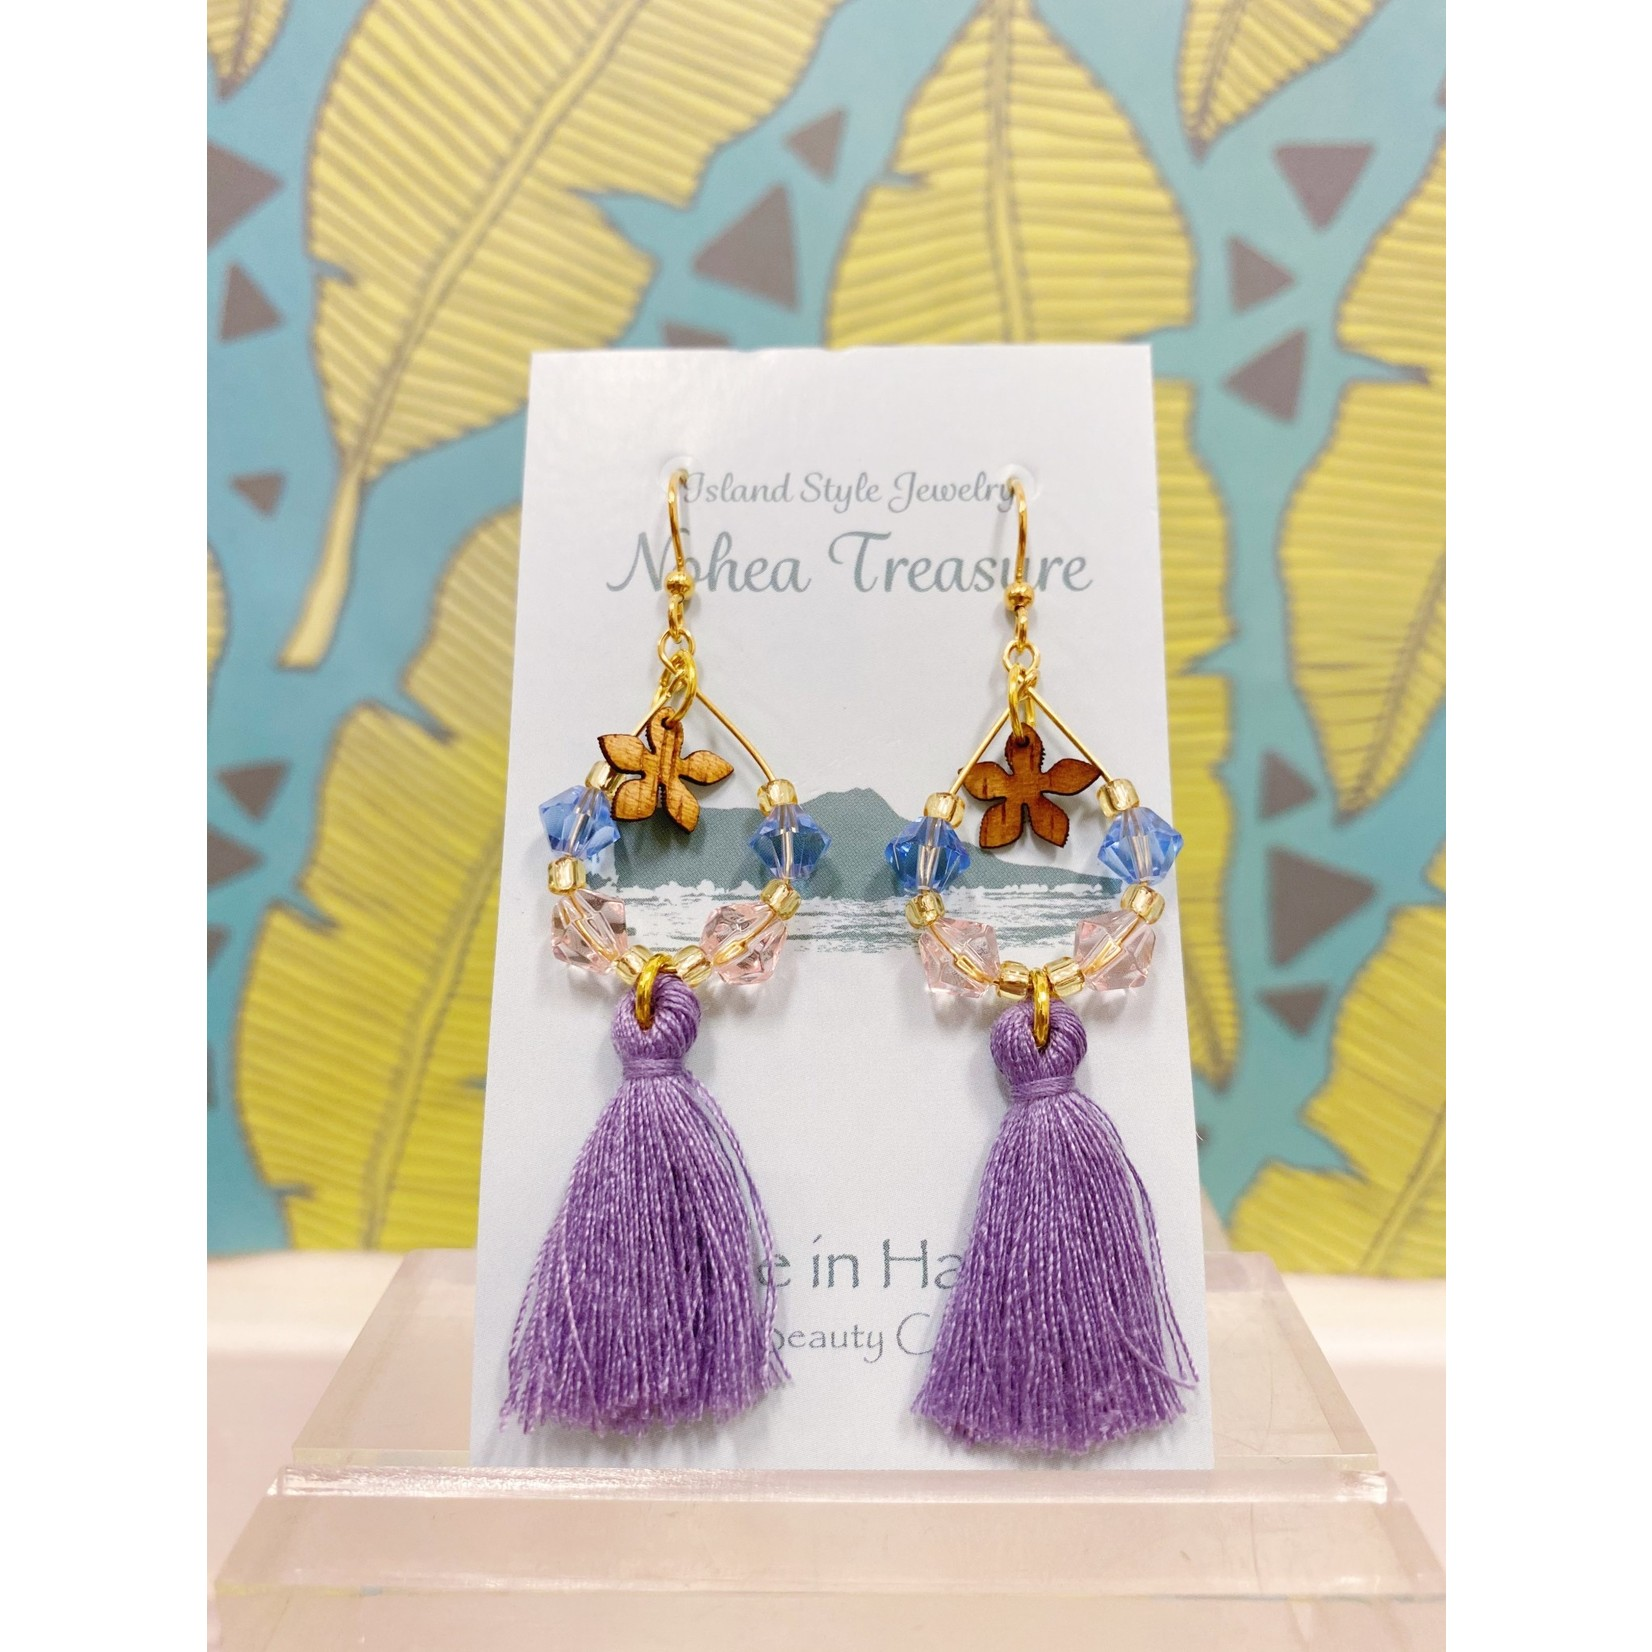 Aloha Beauty Creations Nohea Treasure Accessories Earrings Plumeria/Tassels